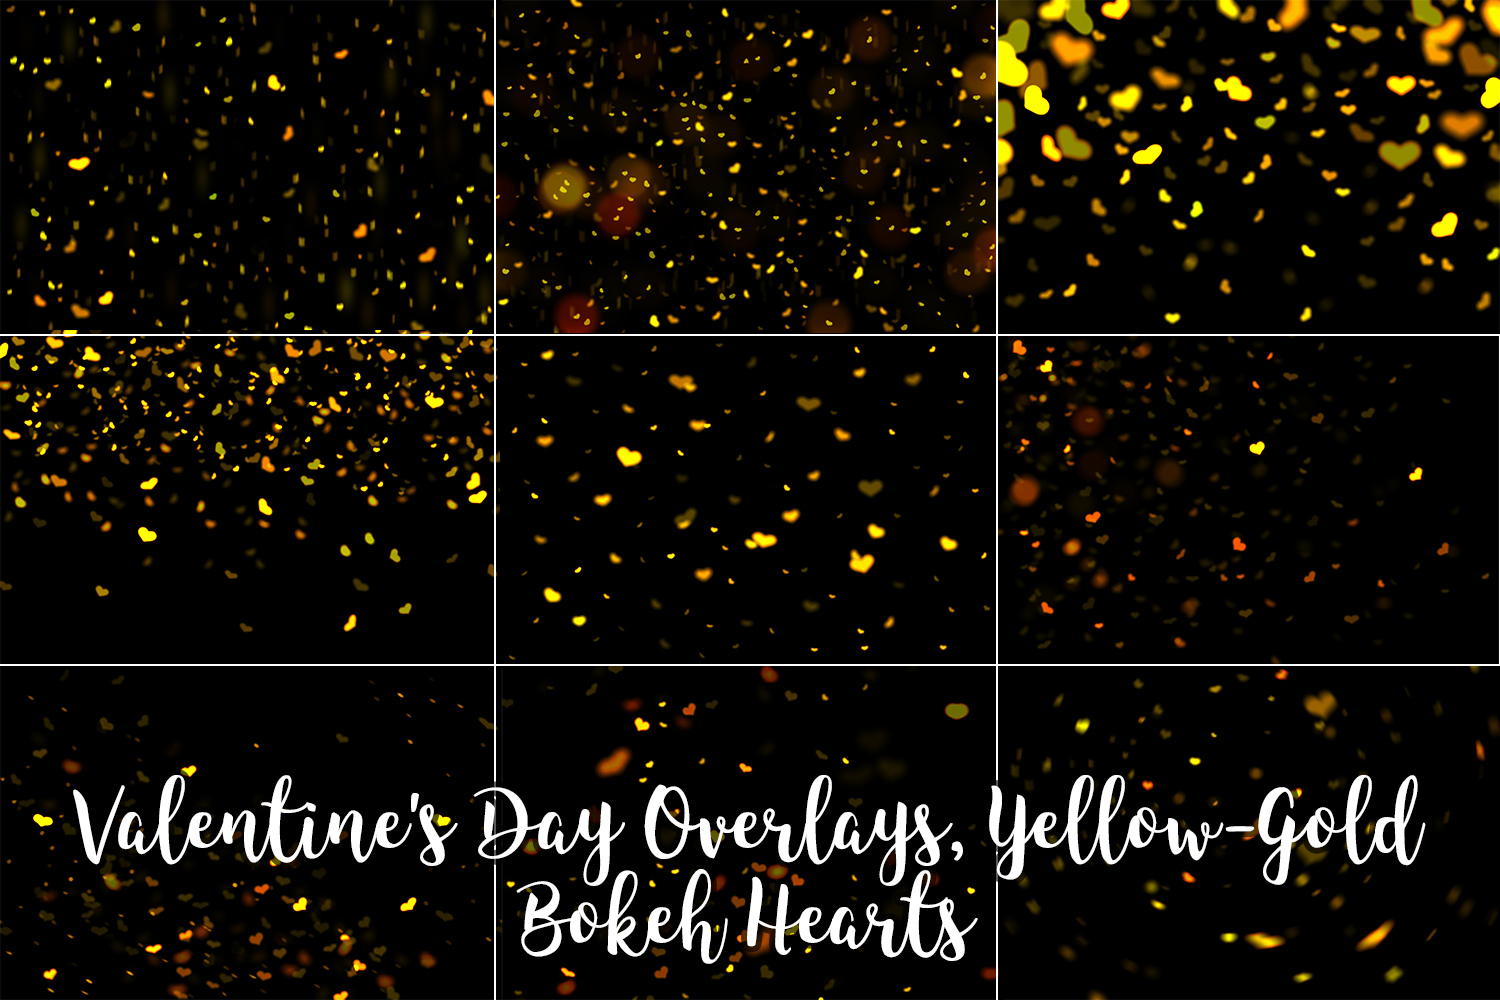 Valentine's Day Overlays, Yellow Gold Hearts Bokeh Overlays example image 10